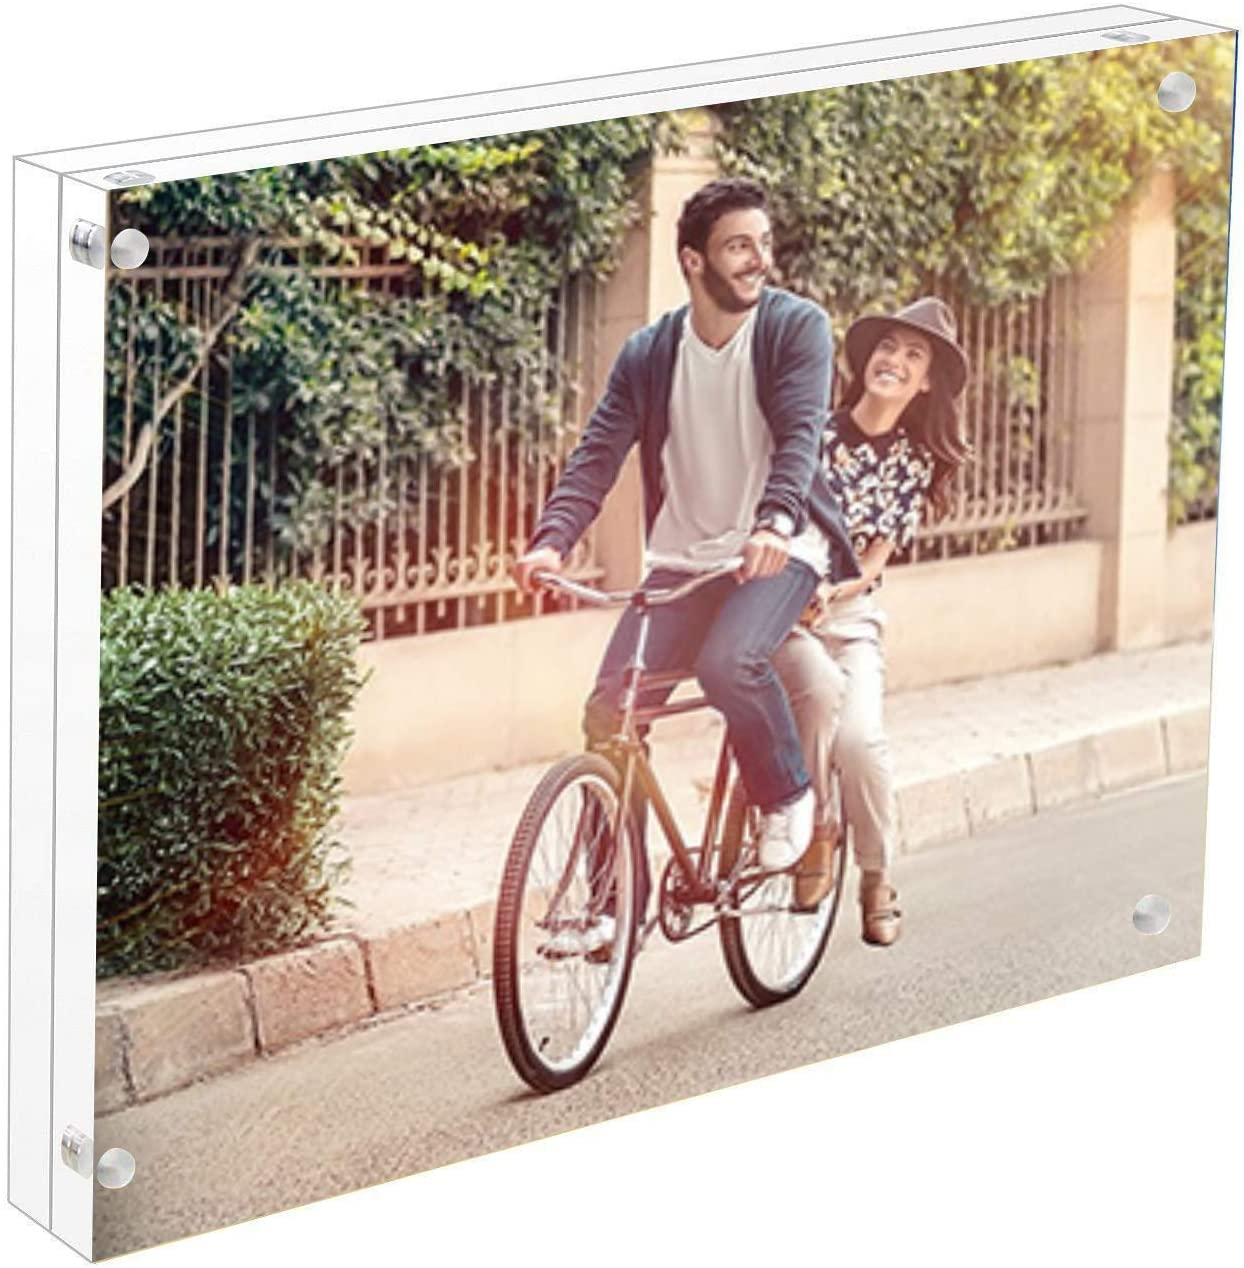 Cq Max 67% OFF Ranking TOP7 acrylic 4x6 Acrylic Frame 10 Magnetic Clear Picture Frames